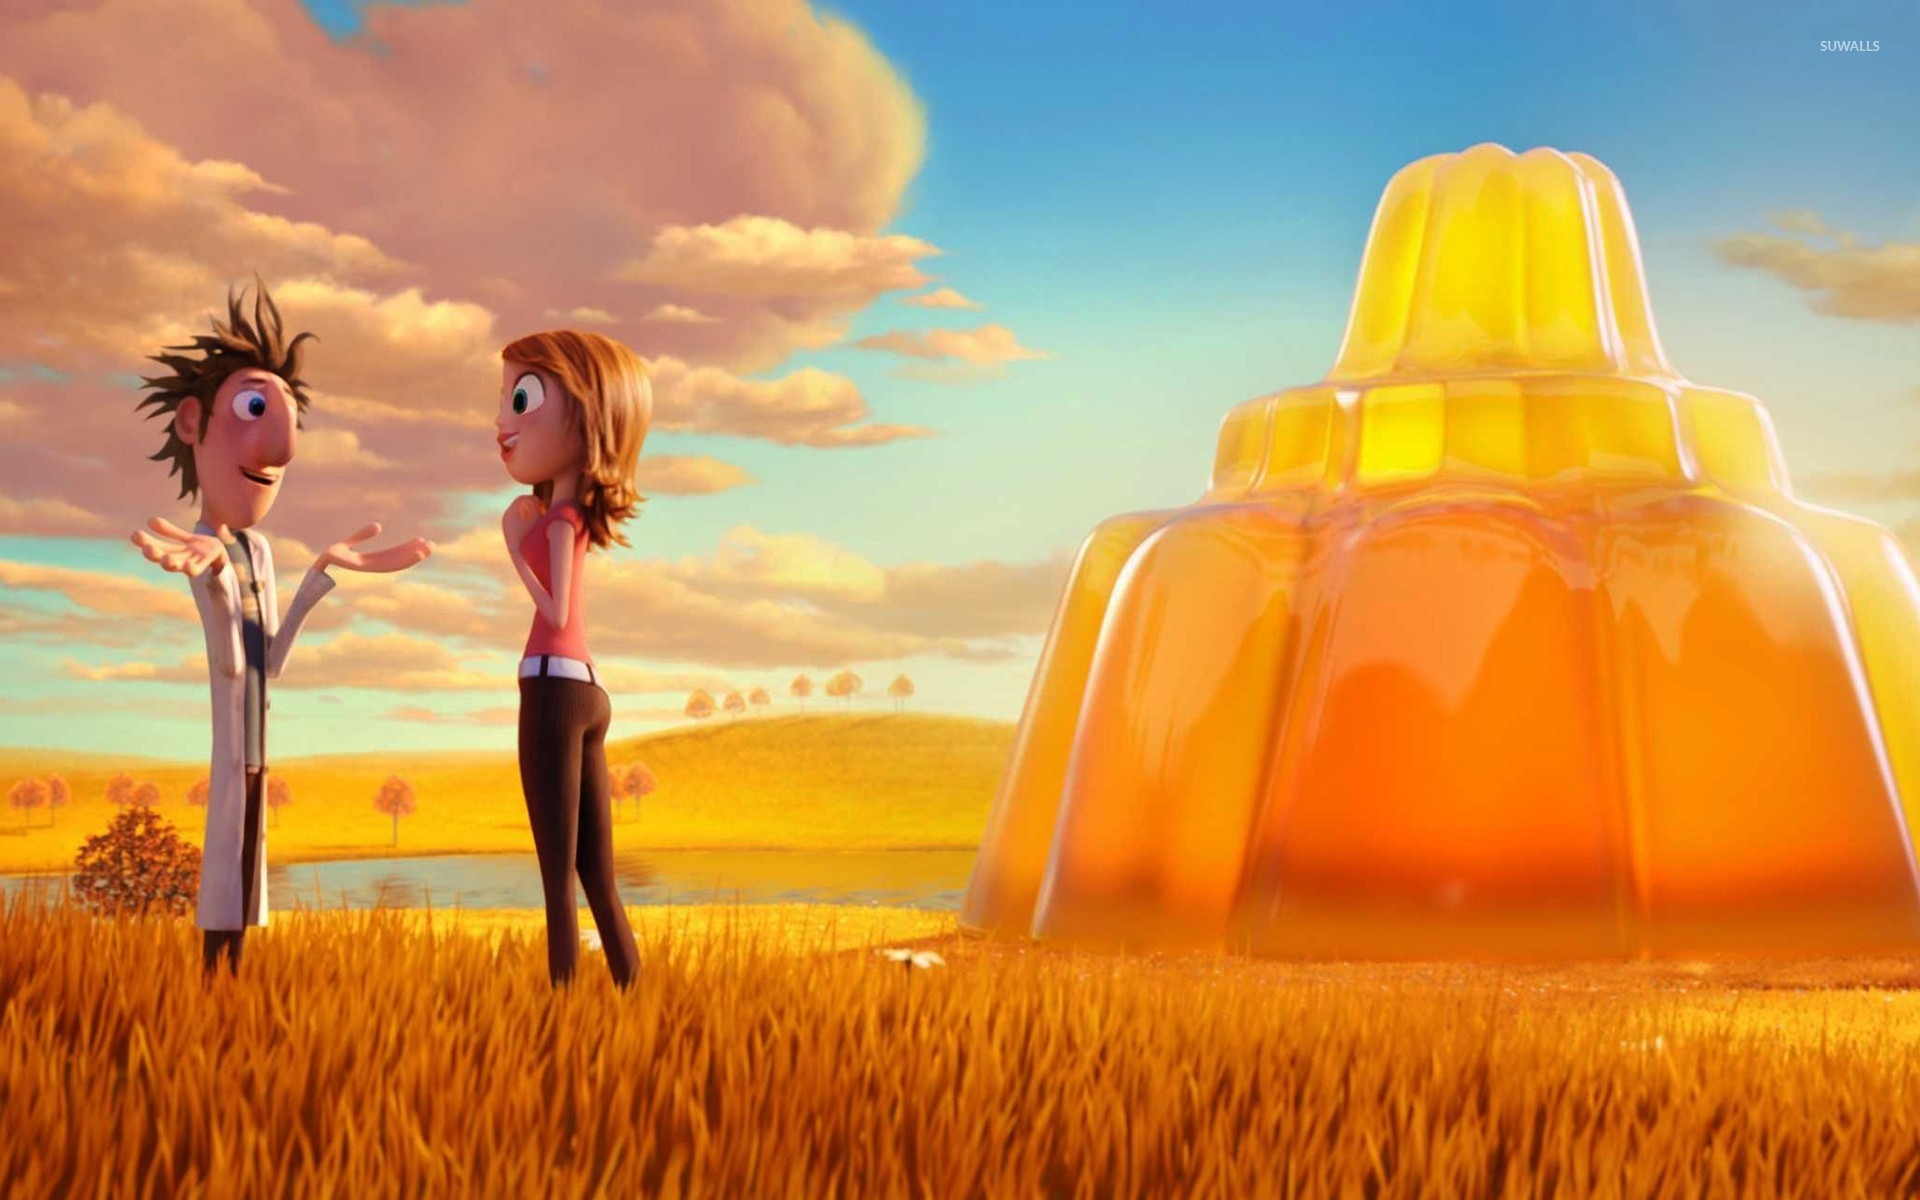 cloudy with a chance of meatballs 2 [5] wallpaper - cartoon